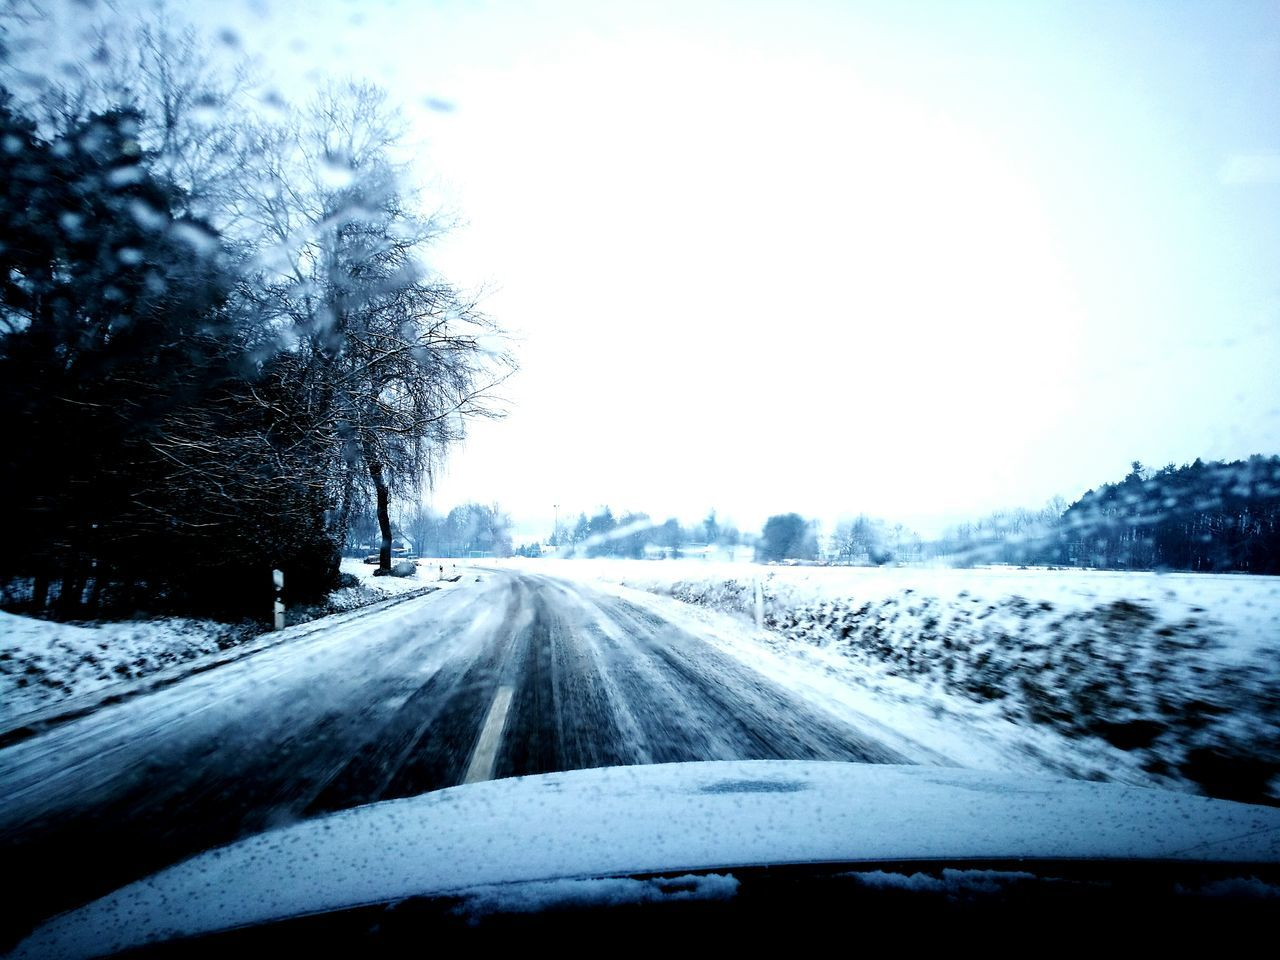 car, cold temperature, windshield, transportation, winter, car interior, vehicle interior, snow, the way forward, road, car point of view, land vehicle, tree, weather, mode of transport, nature, windscreen, no people, driving, travel, day, dashboard, journey, road trip, frozen, landscape, scenics, clear sky, beauty in nature, sky, outdoors, close-up